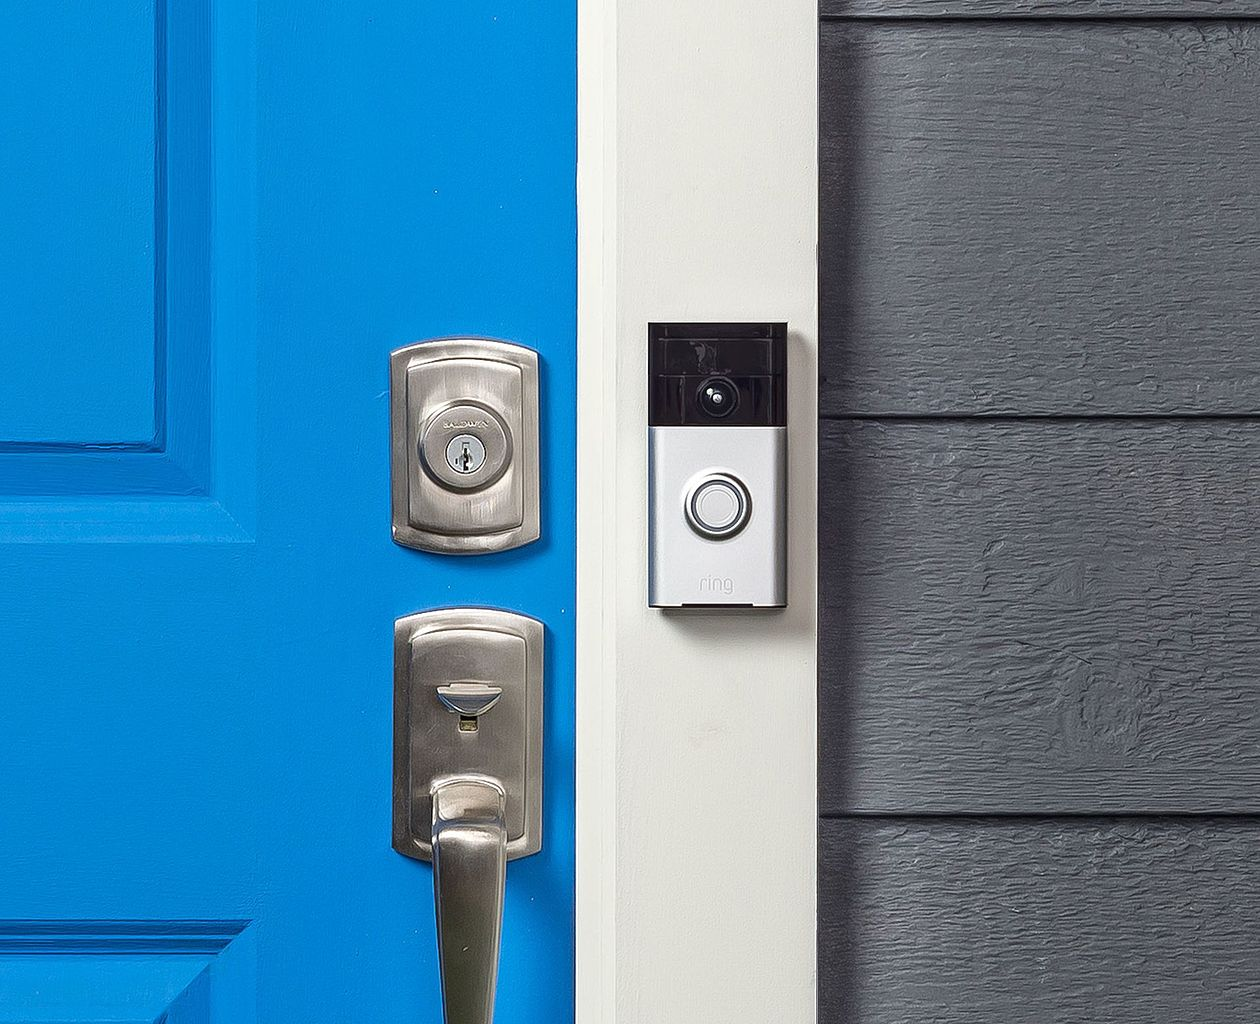 Amazon's collaborations with local police turn its Ring doorbell cameras into unofficial community surveillance systems